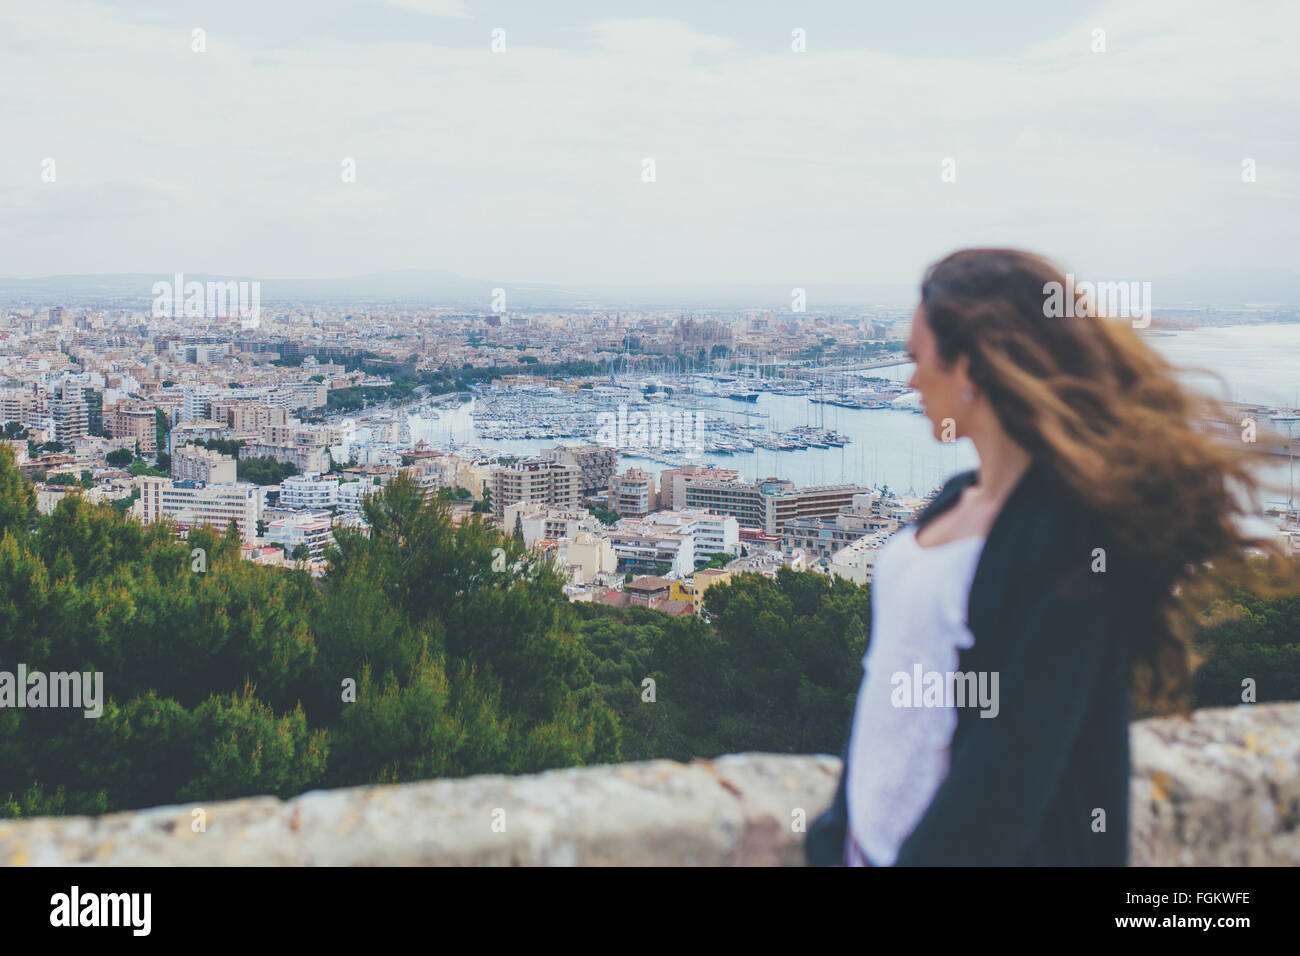 Woman looking down at the City of Palma - Stock Image